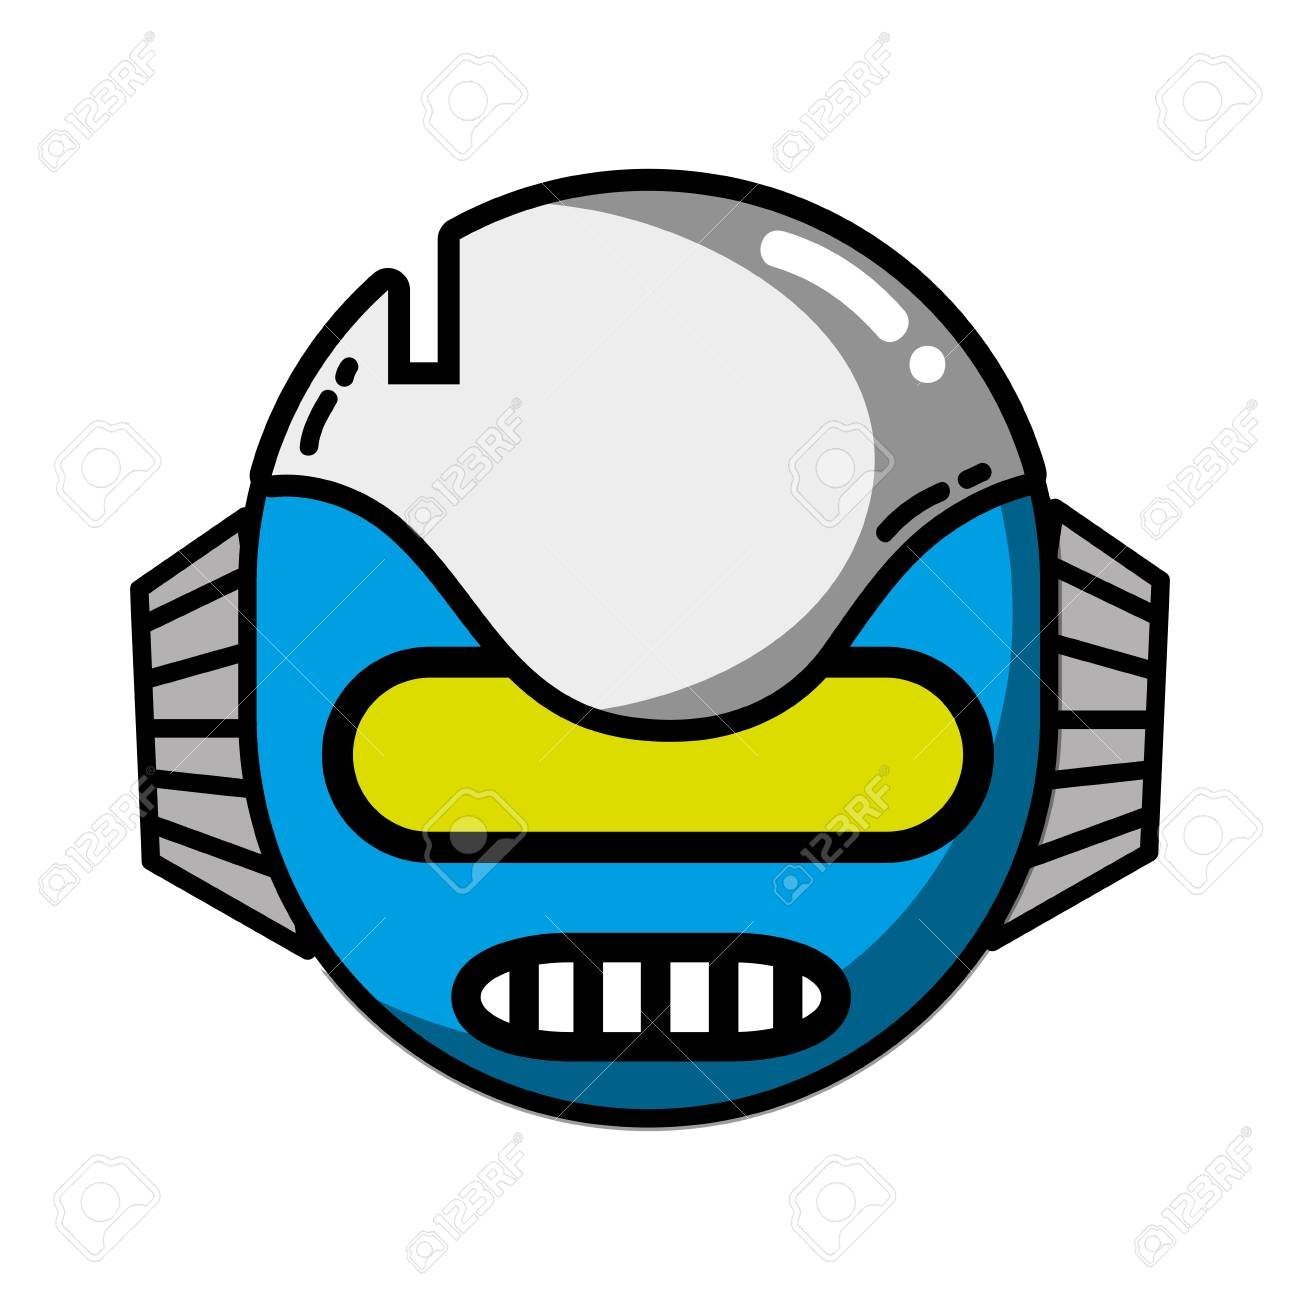 Robot mouth clipart